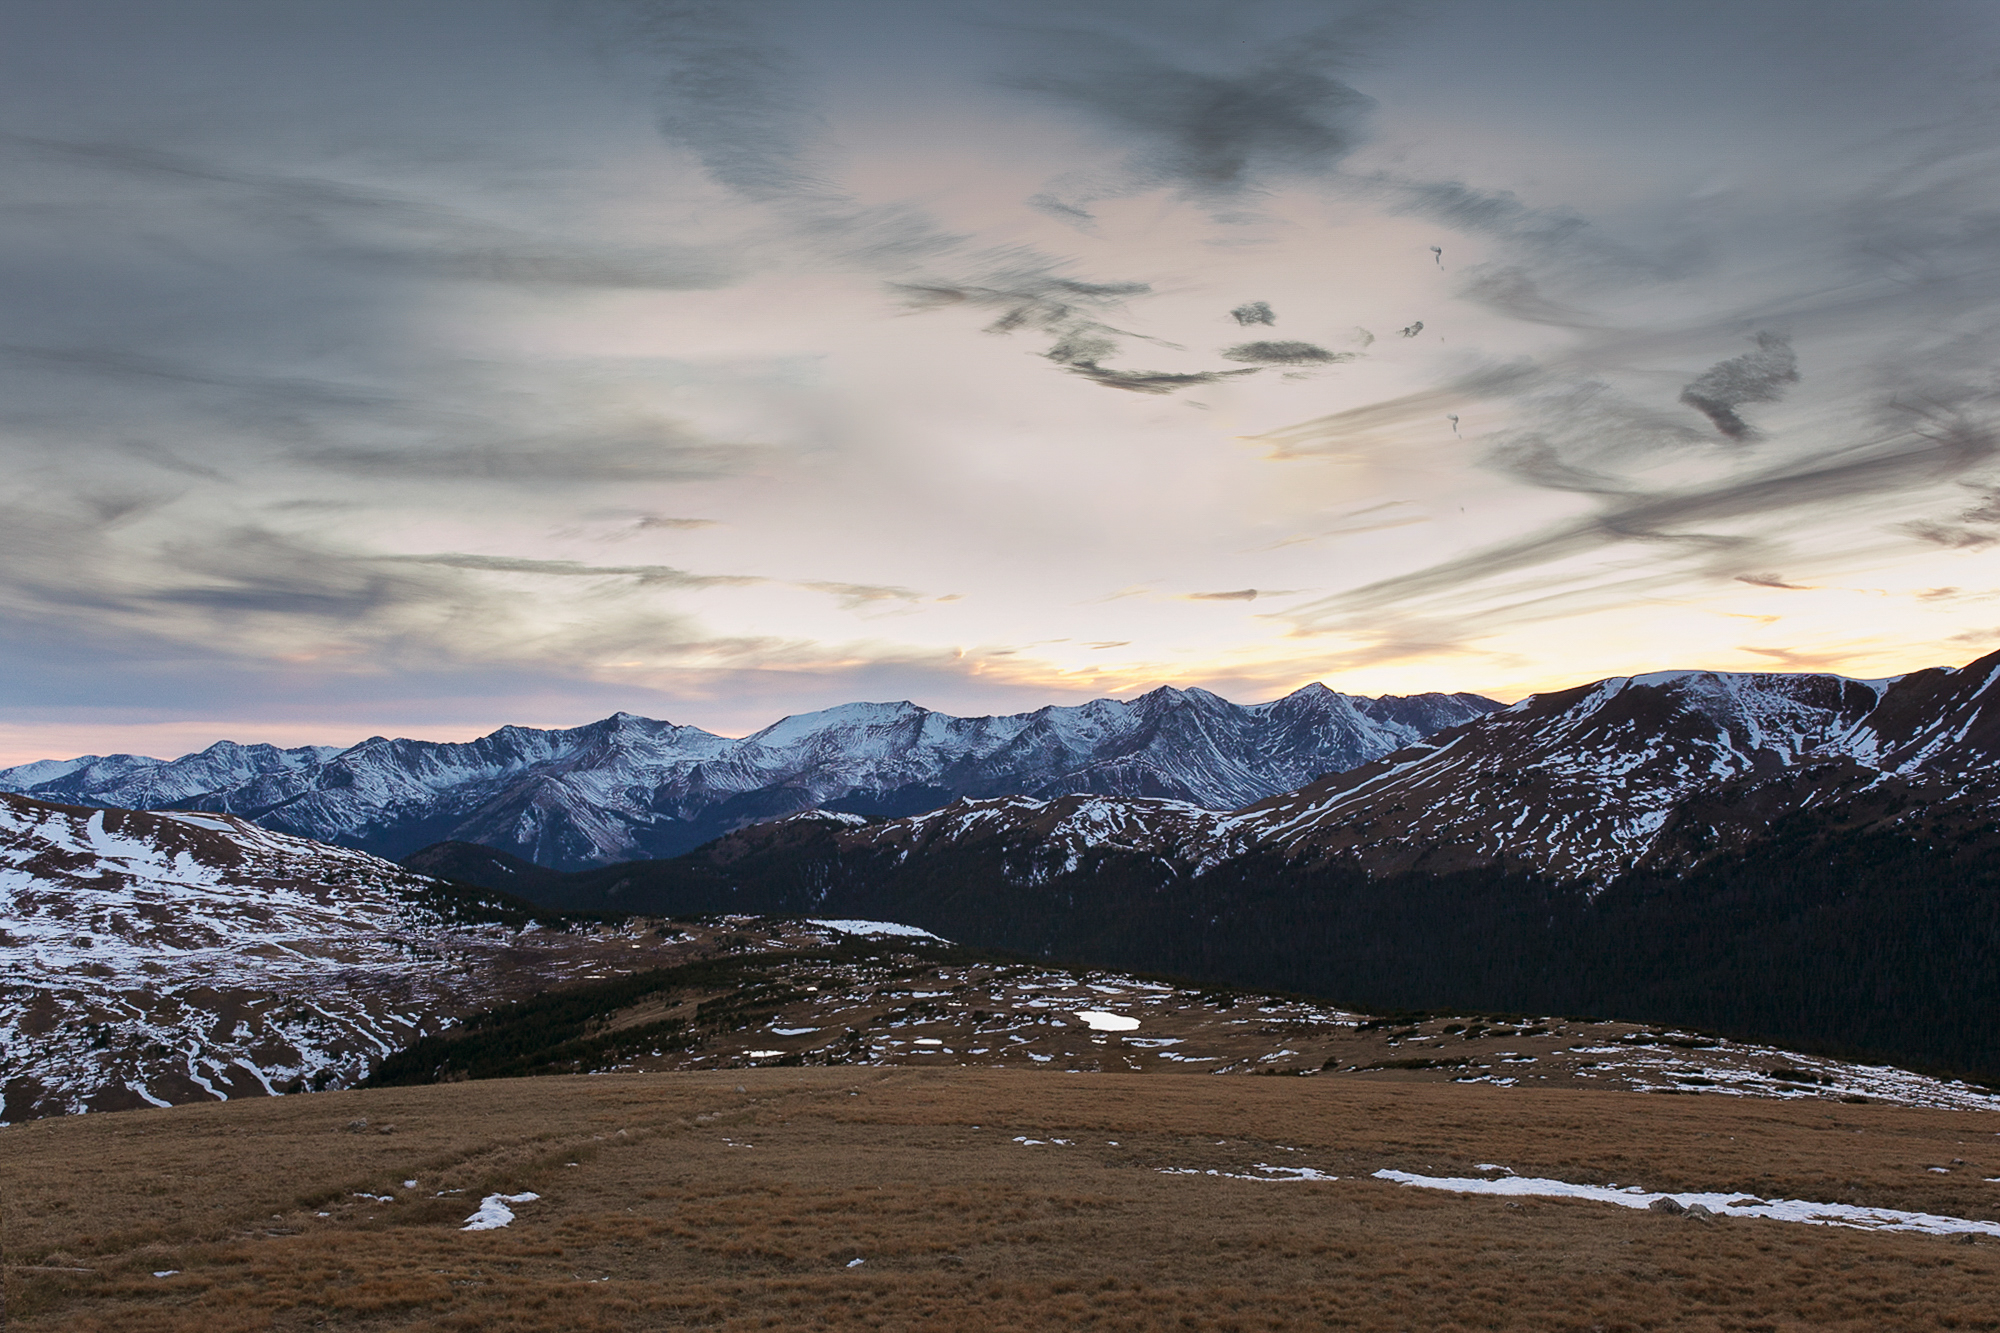 072Travel_Adventure_Outdoor_Photography_Outlive_Creative_COLORADO_Tundra_Trails_Rocky_Mountains.jpg